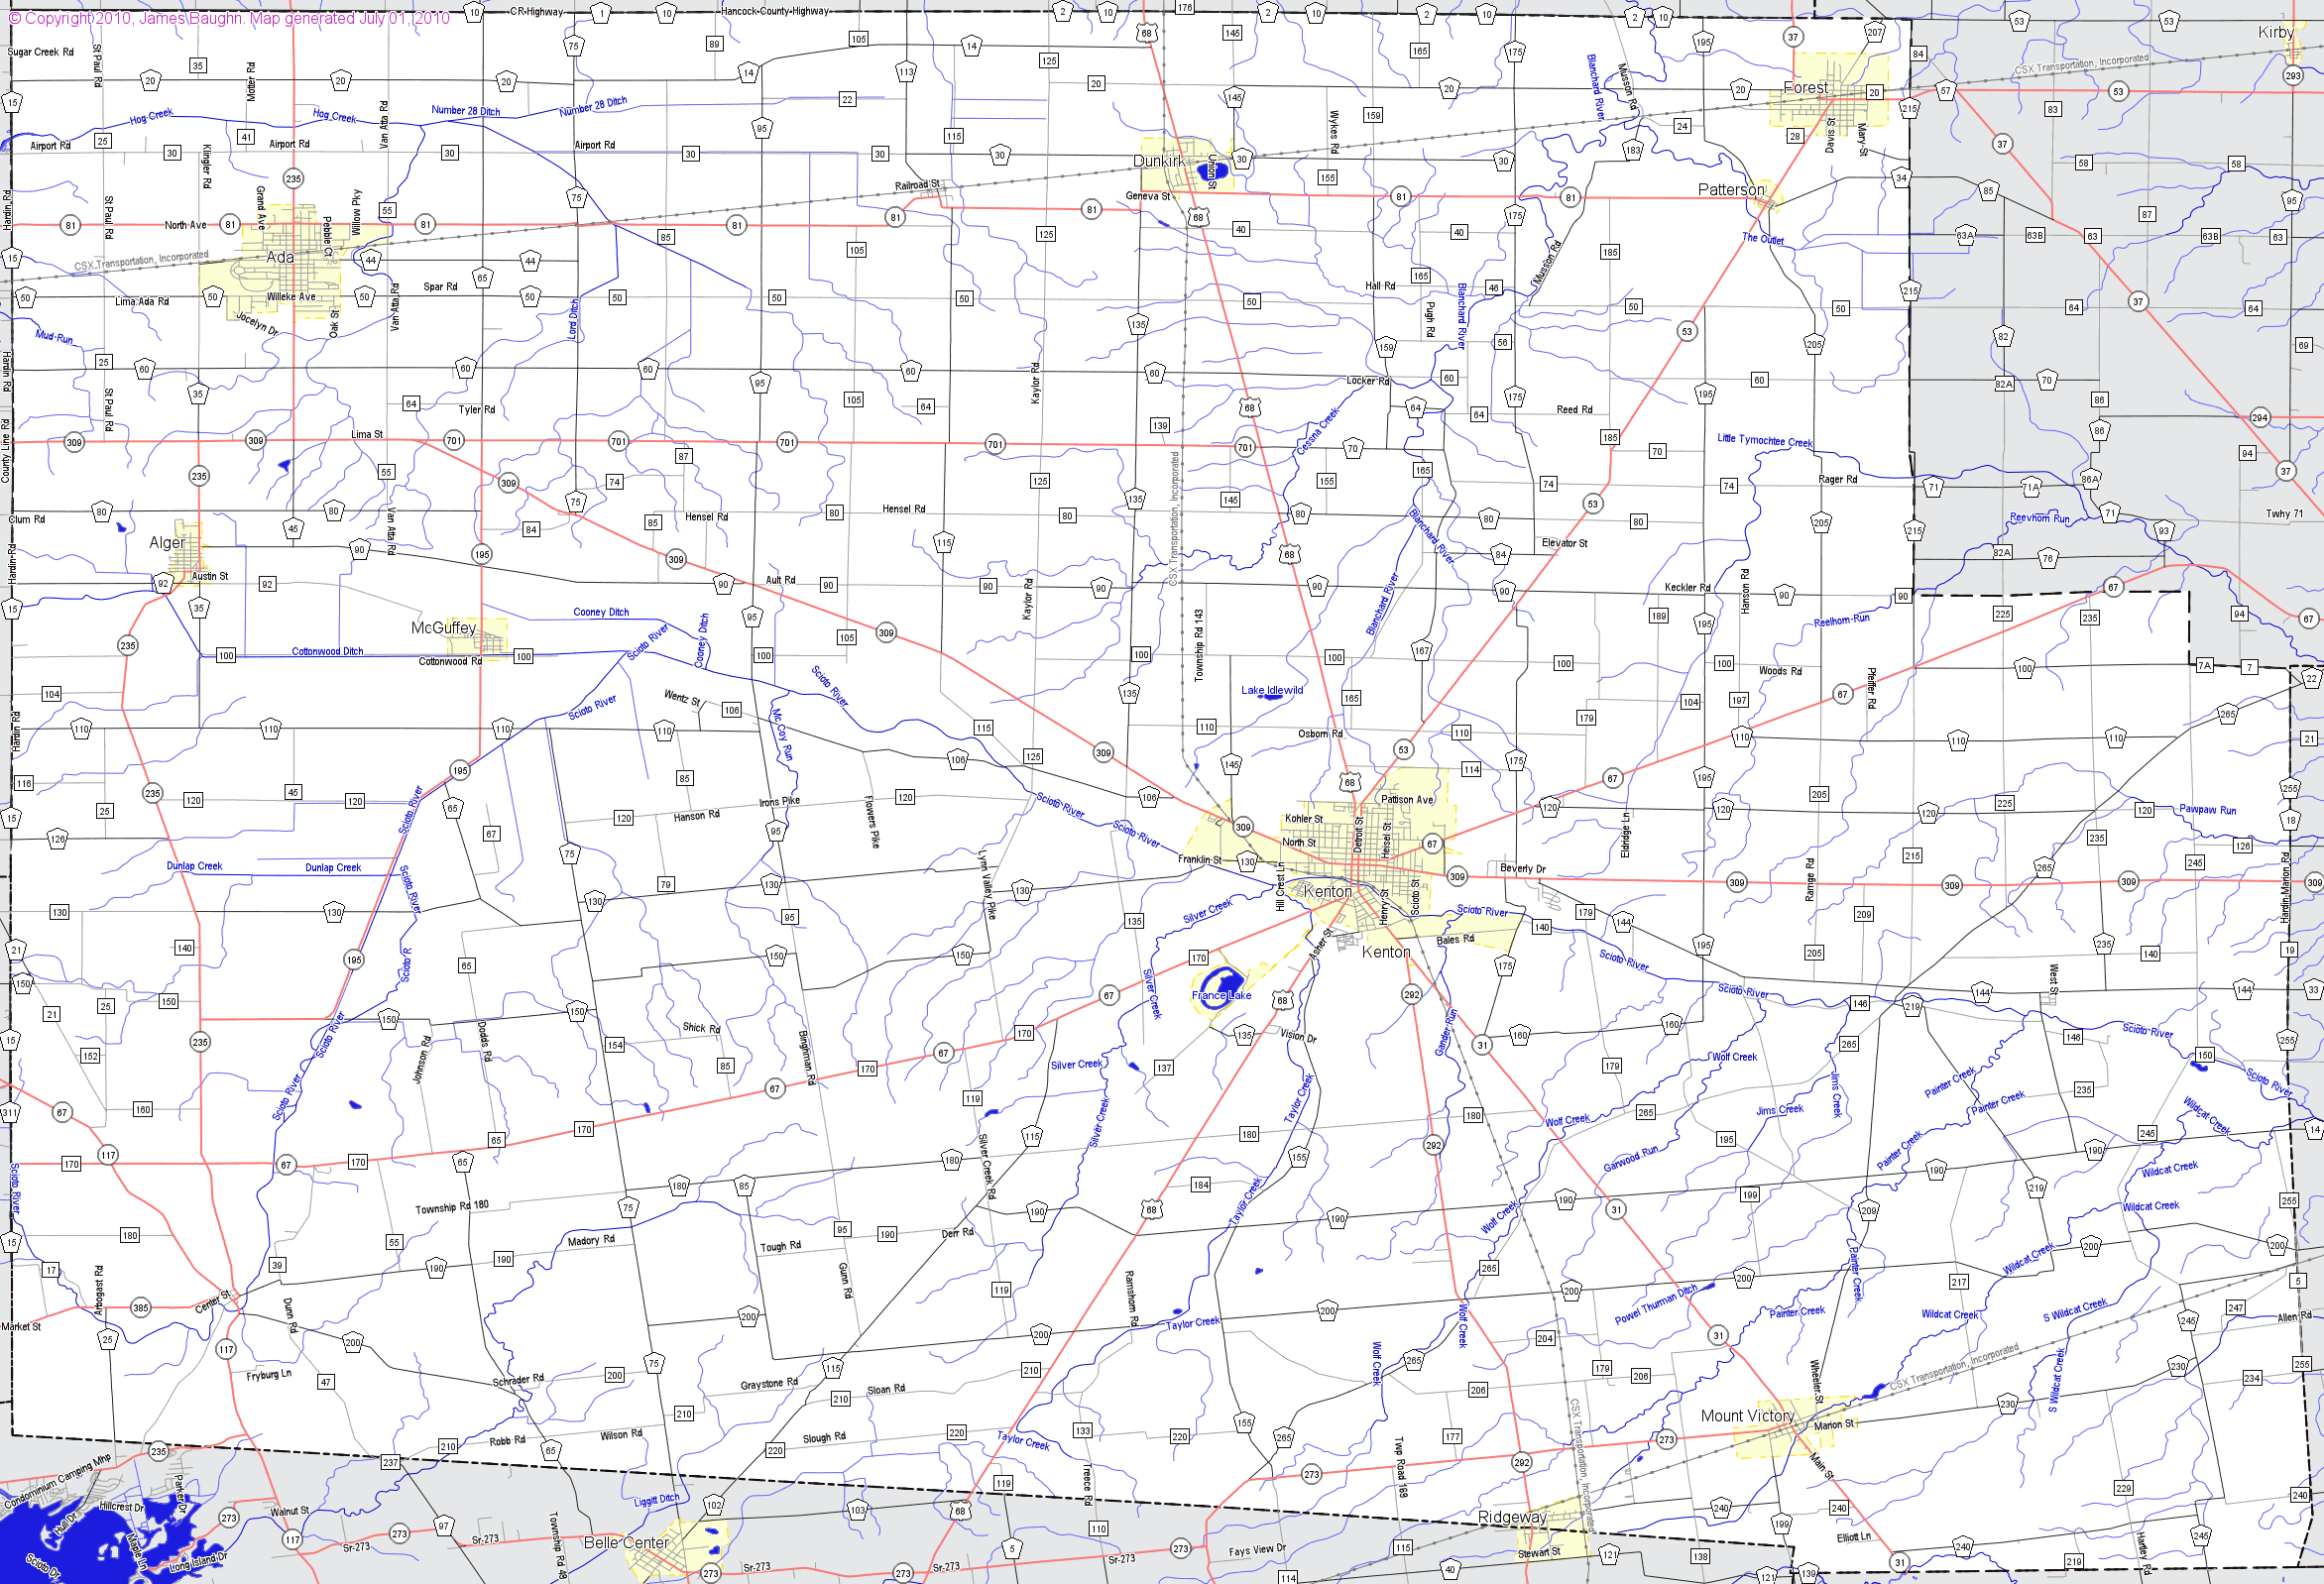 missouri county map with cities with Big Map on Ohio Regional Zip Code Wall Maps together with File Montana 1990 likewise Tennessee Ley Lines Map also Yesterdays Hail Summary 5152015 43 Hail Reports likewise SIENNA PLANTATION 31.